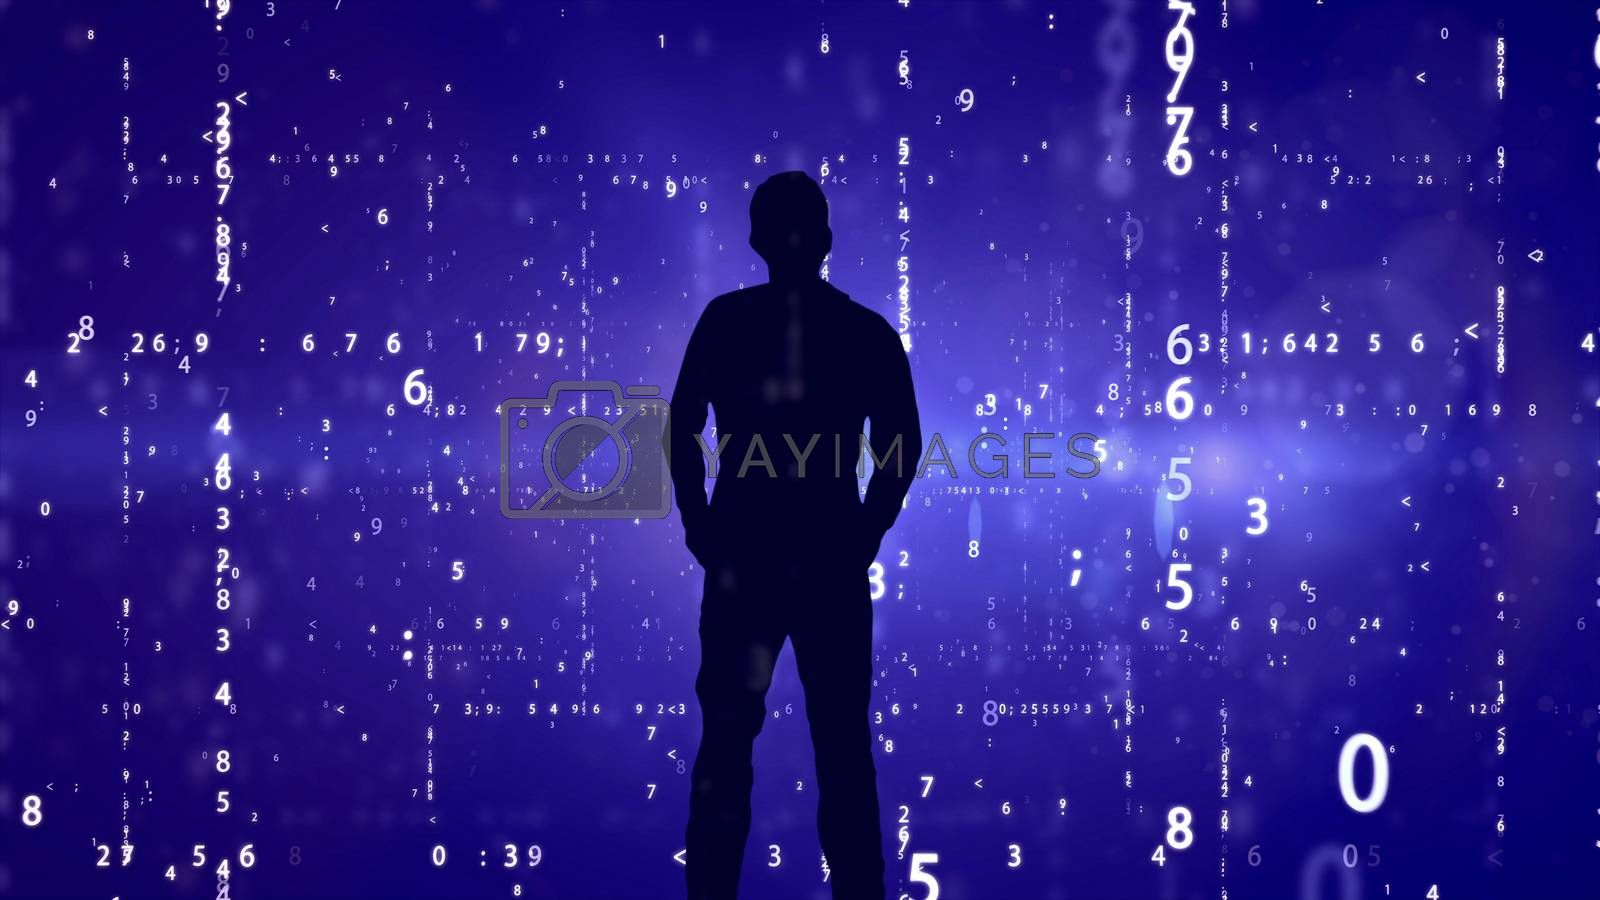 Silhouette of man on matrix effect background.